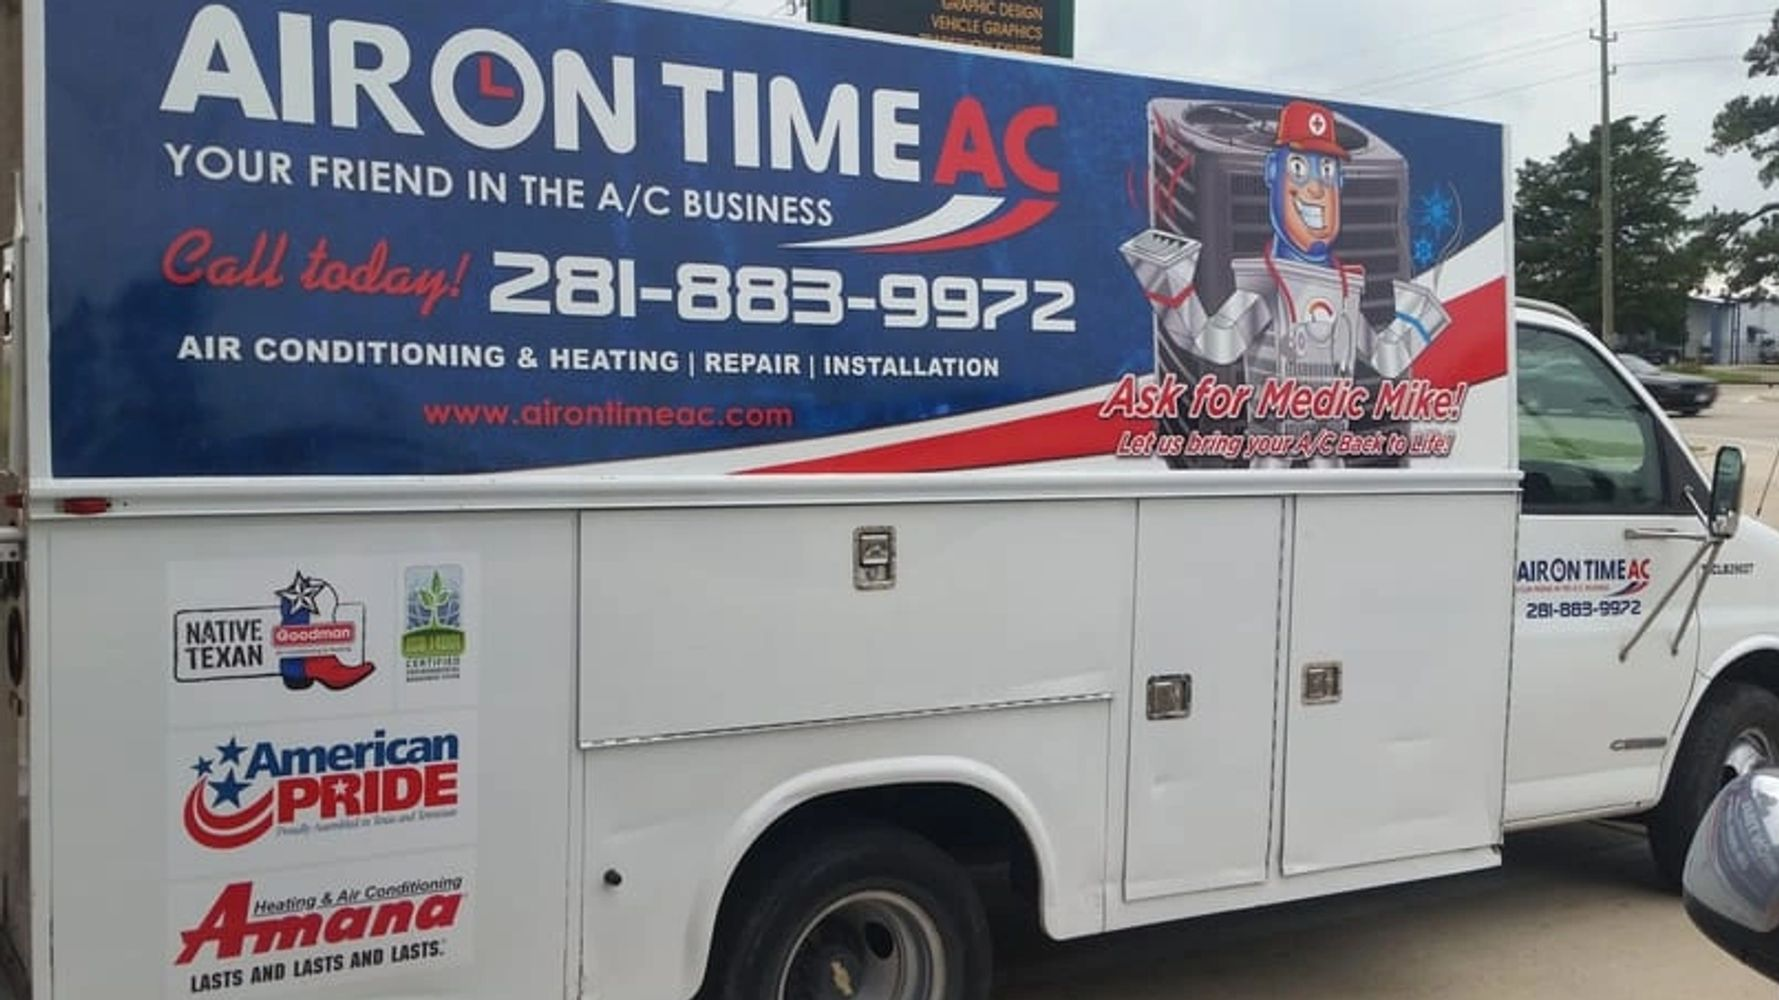 air conditioning repair Conroe, TX and surrounding areas.